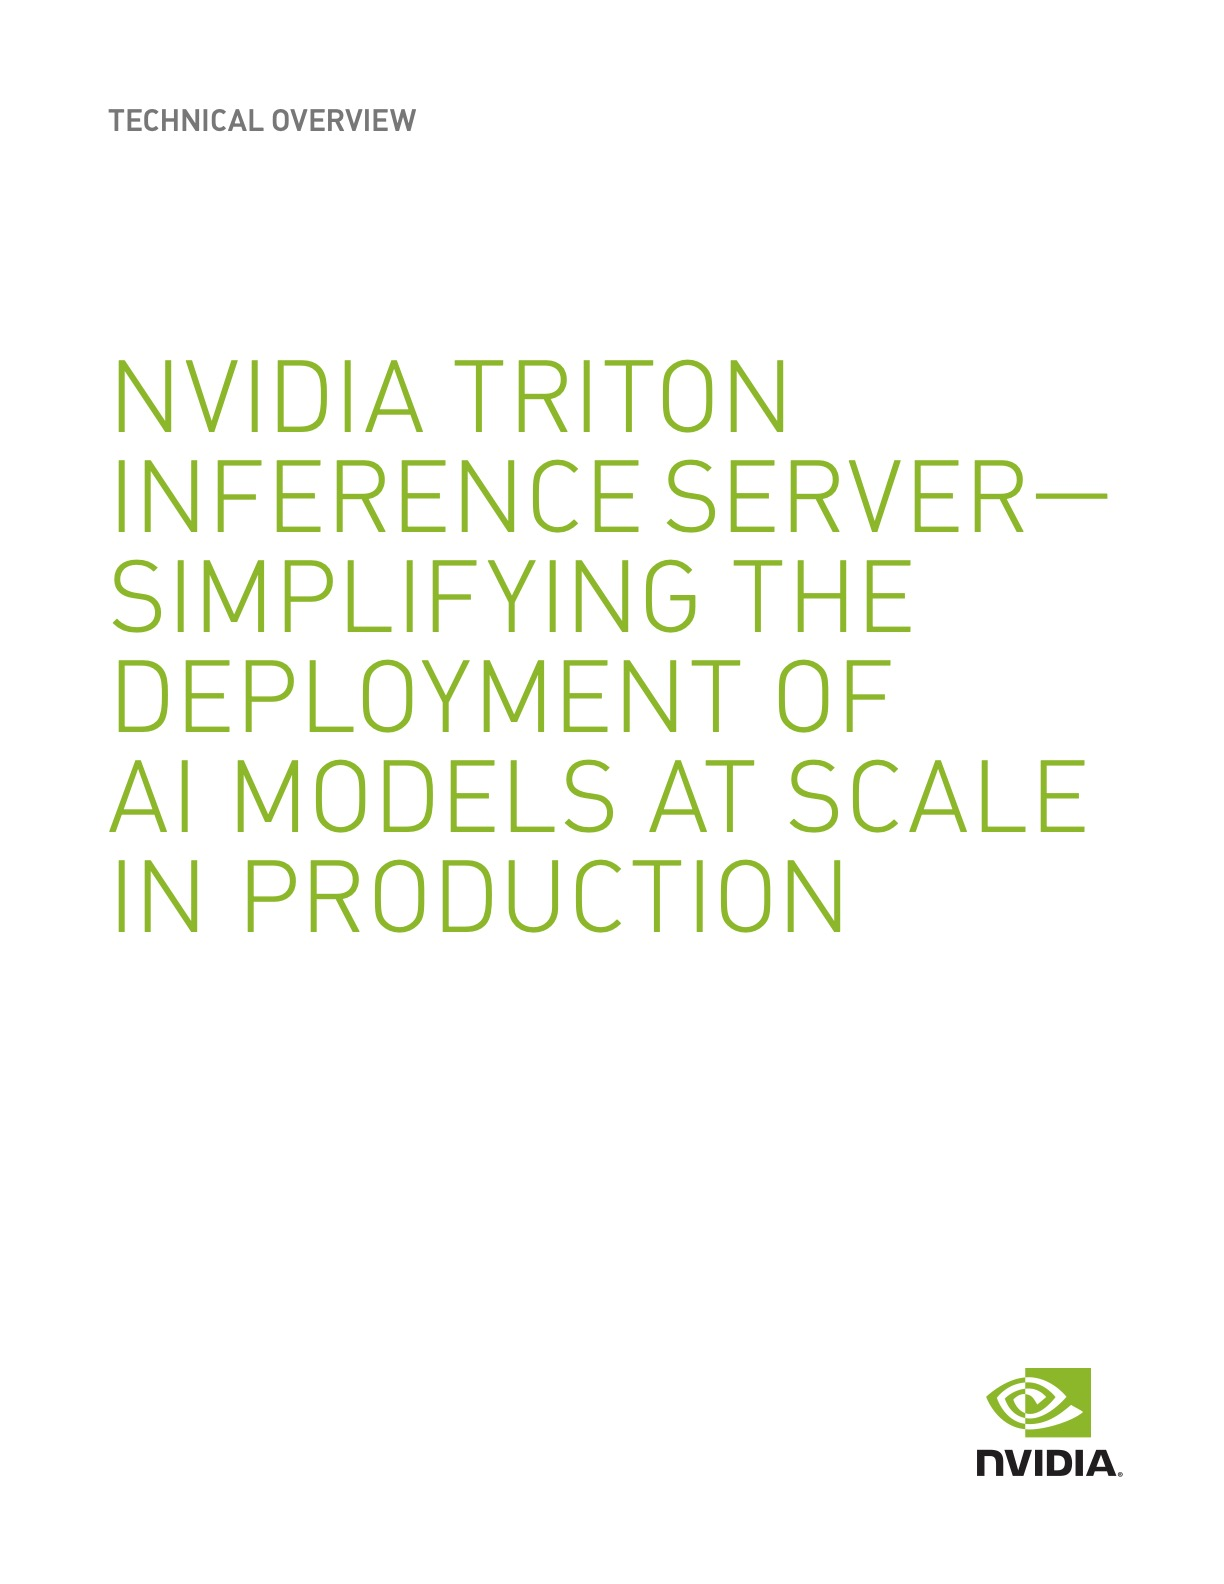 Cover_NVIDIA TRITON INFERENCE SERVER— SIMPLIFYING THE DEPLOYMENT OF AI MODELS AT SCALE IN PRODUCTION